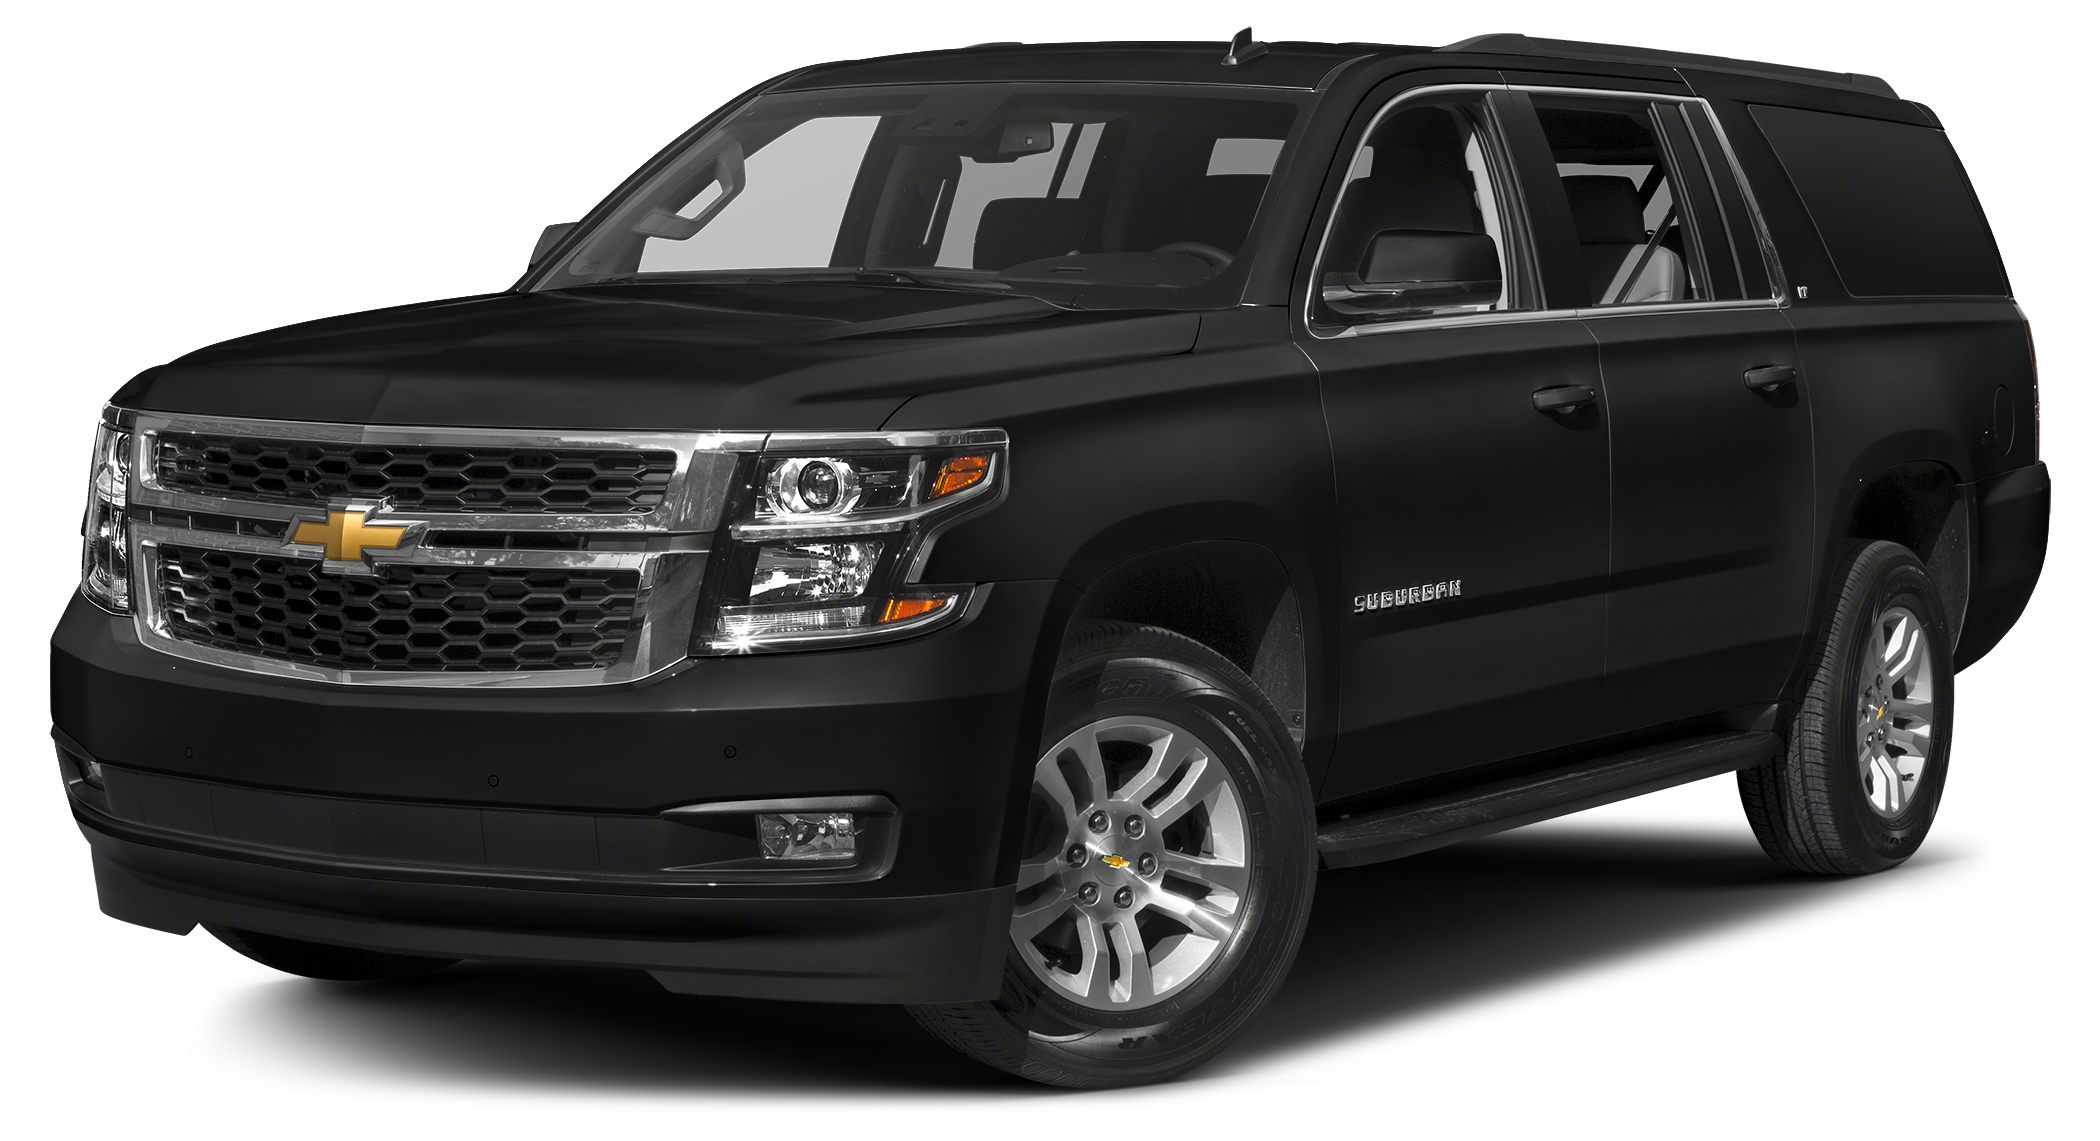 2017 Chevrolet Suburban LT Heated Leather Seats Tow Hitch Quad Seats Power Liftgate WHEELS 20